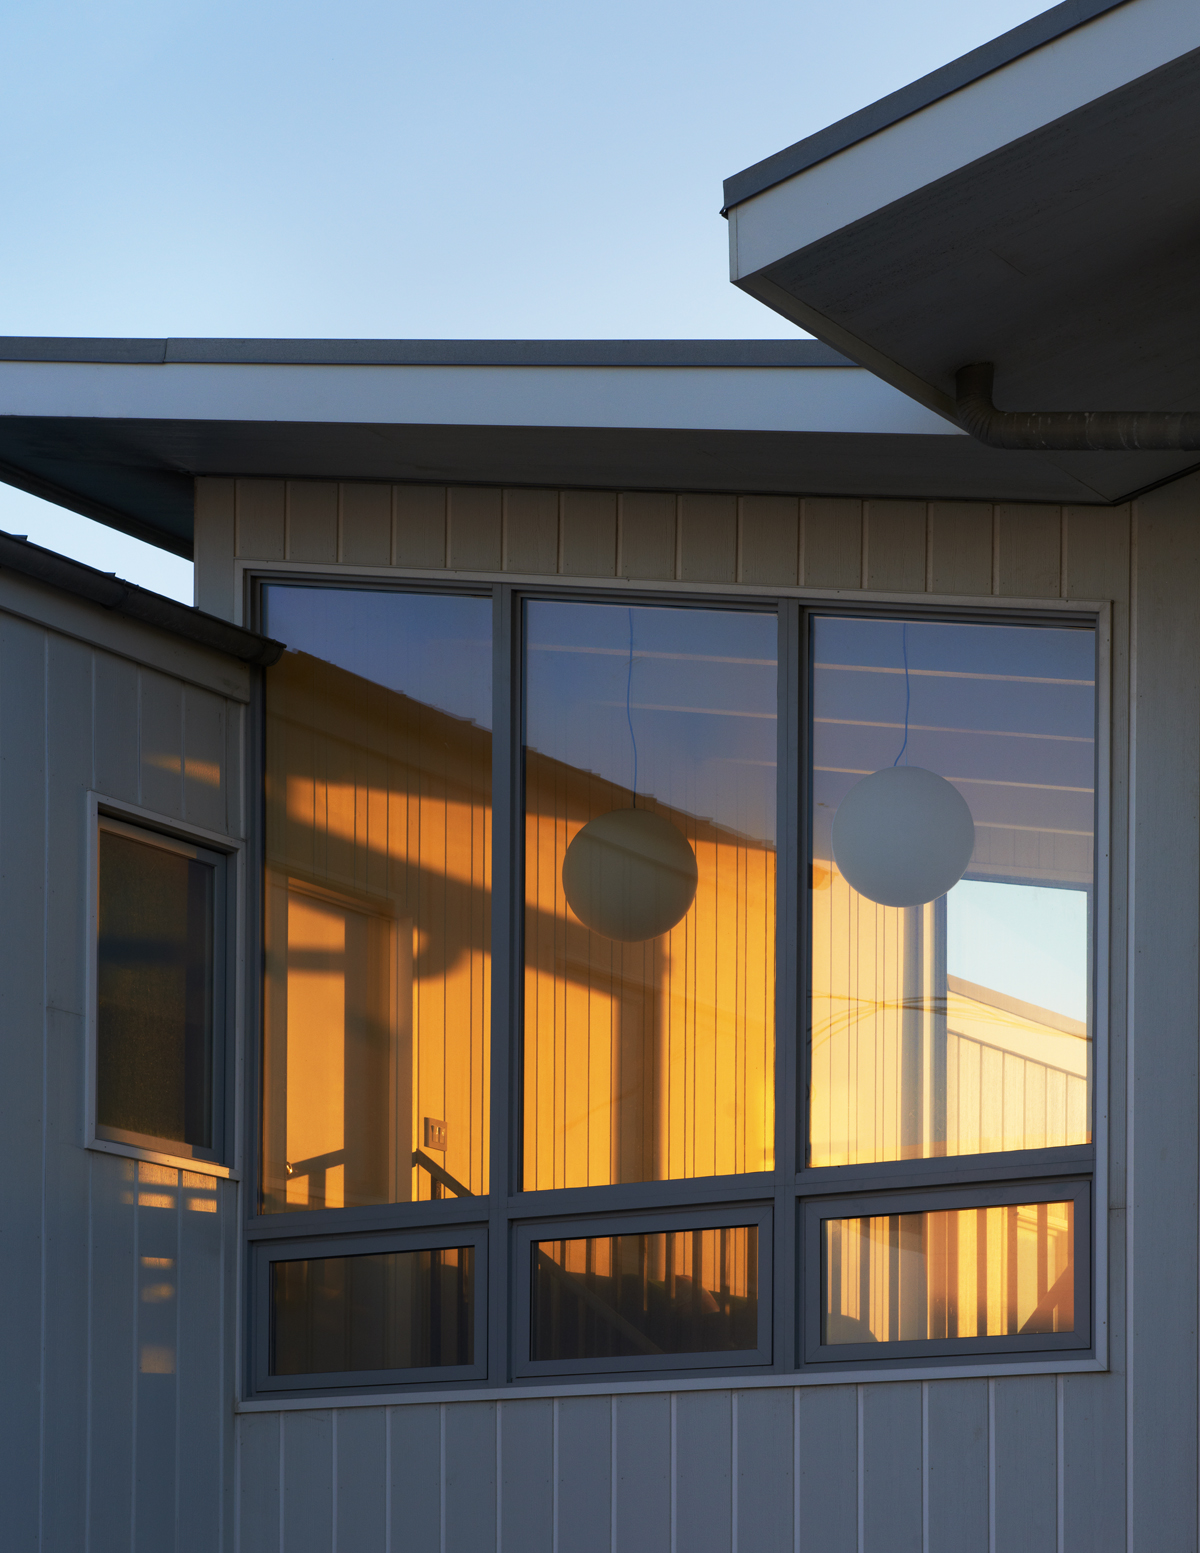 fire island house projectile rated windows